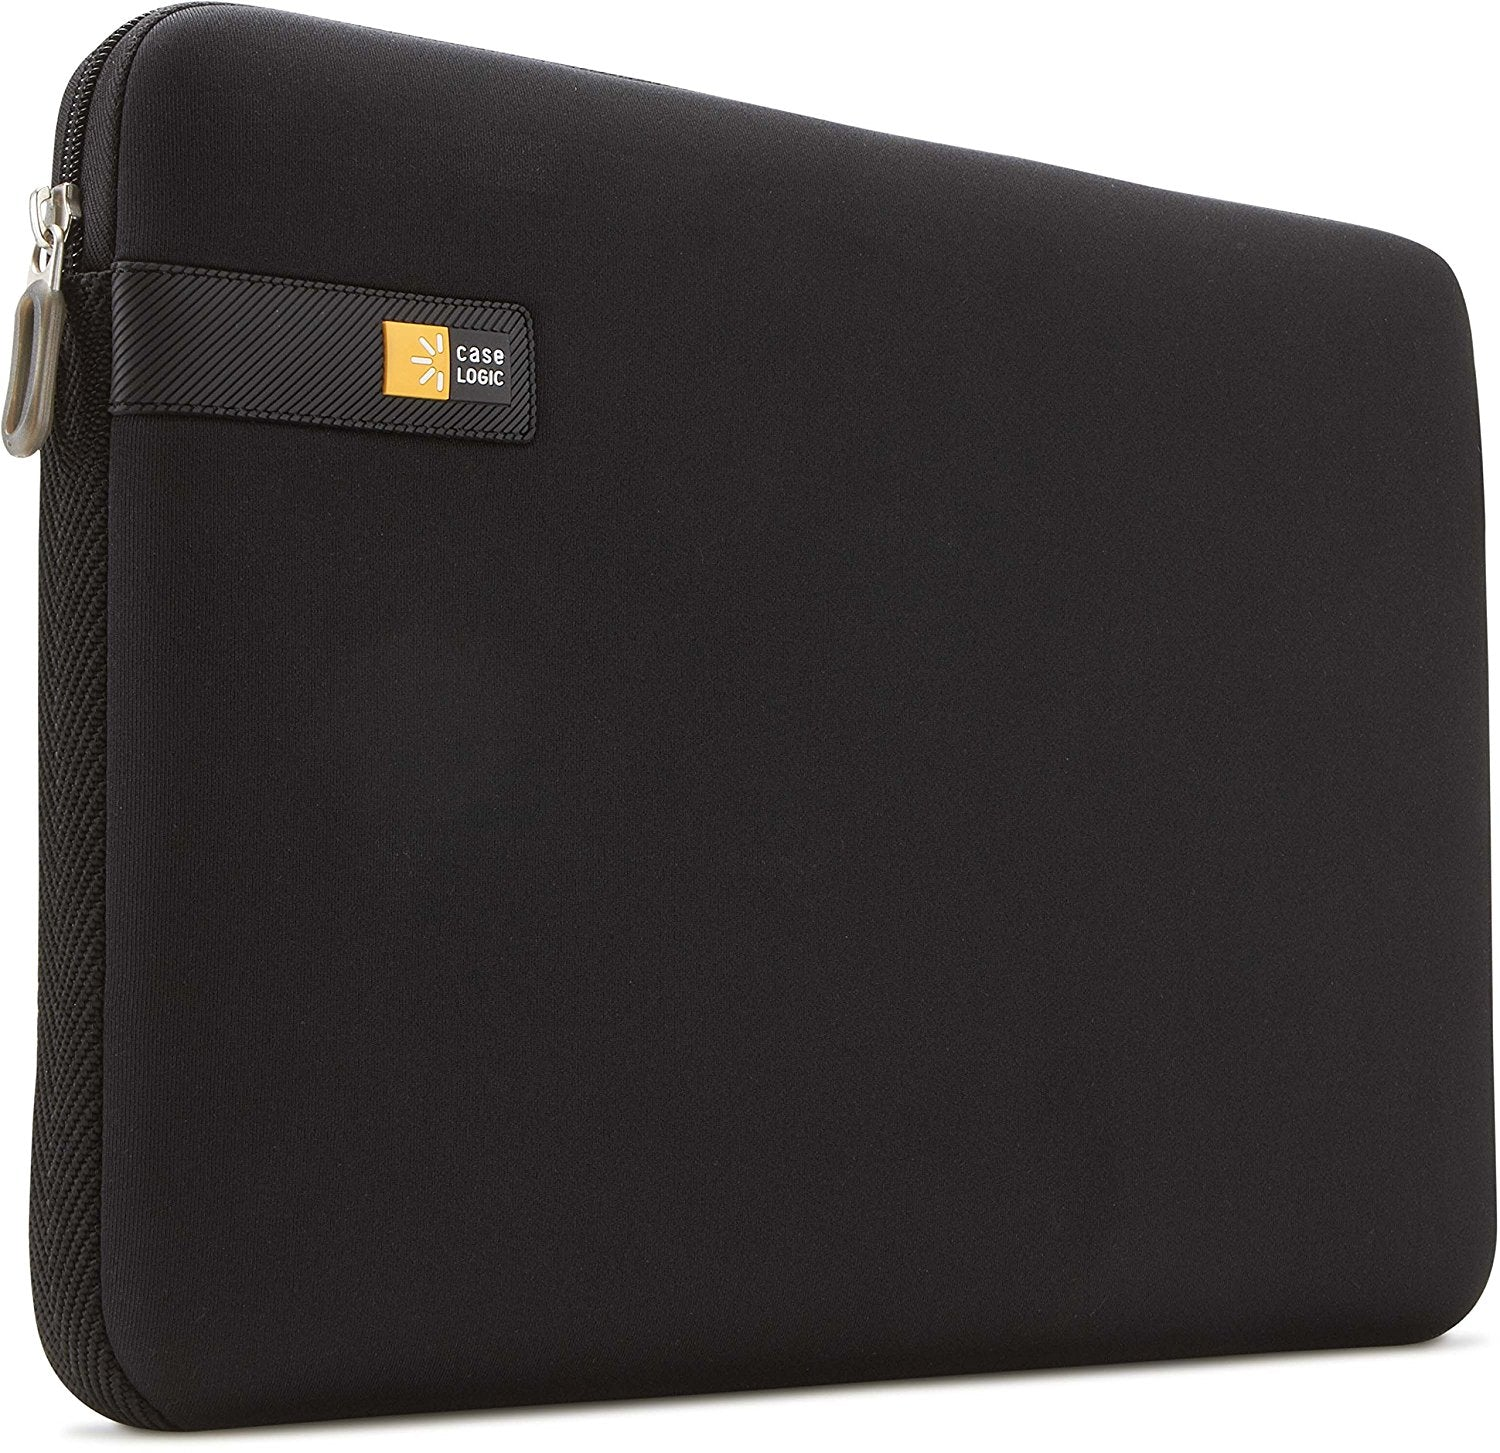 "Case Logic 12"" Laptop Sleeve- LAPS 112 Black"